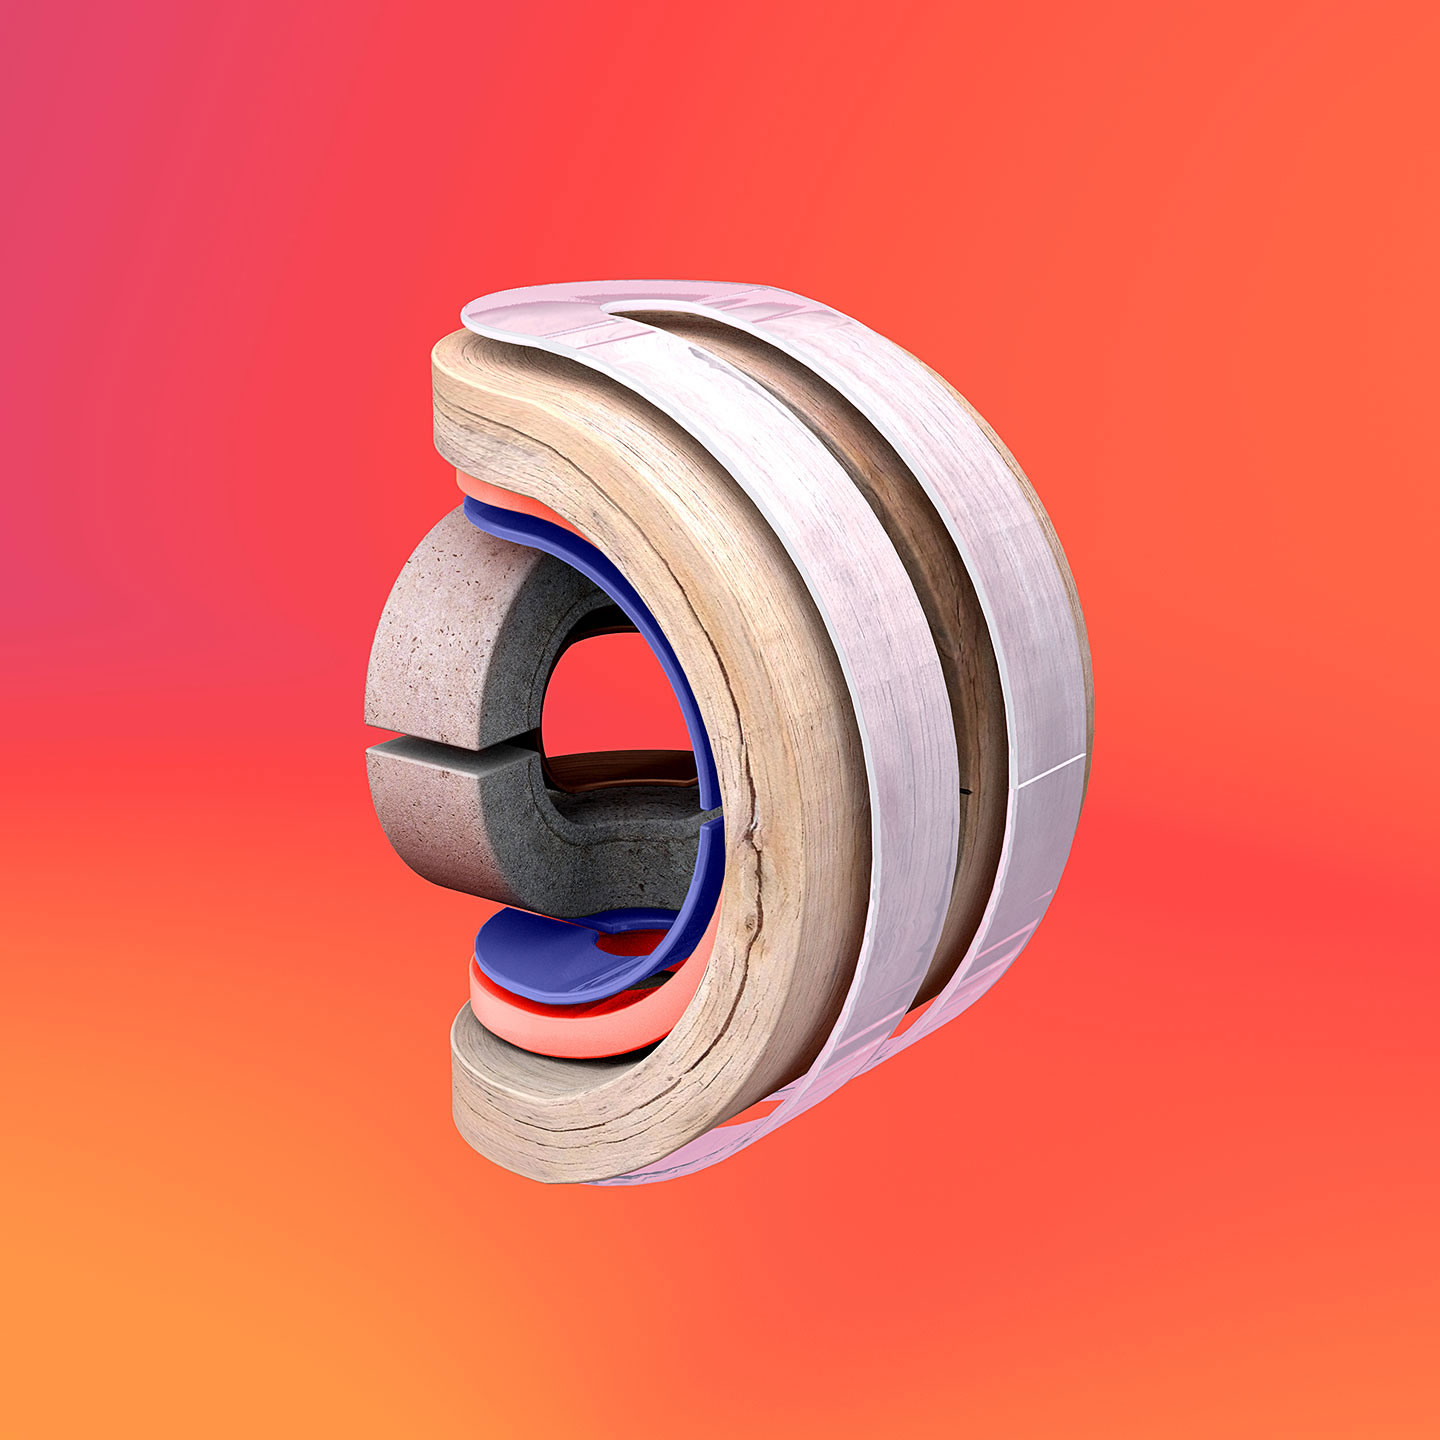 36 Days of Type 2016 - 3D typography letter D visual.